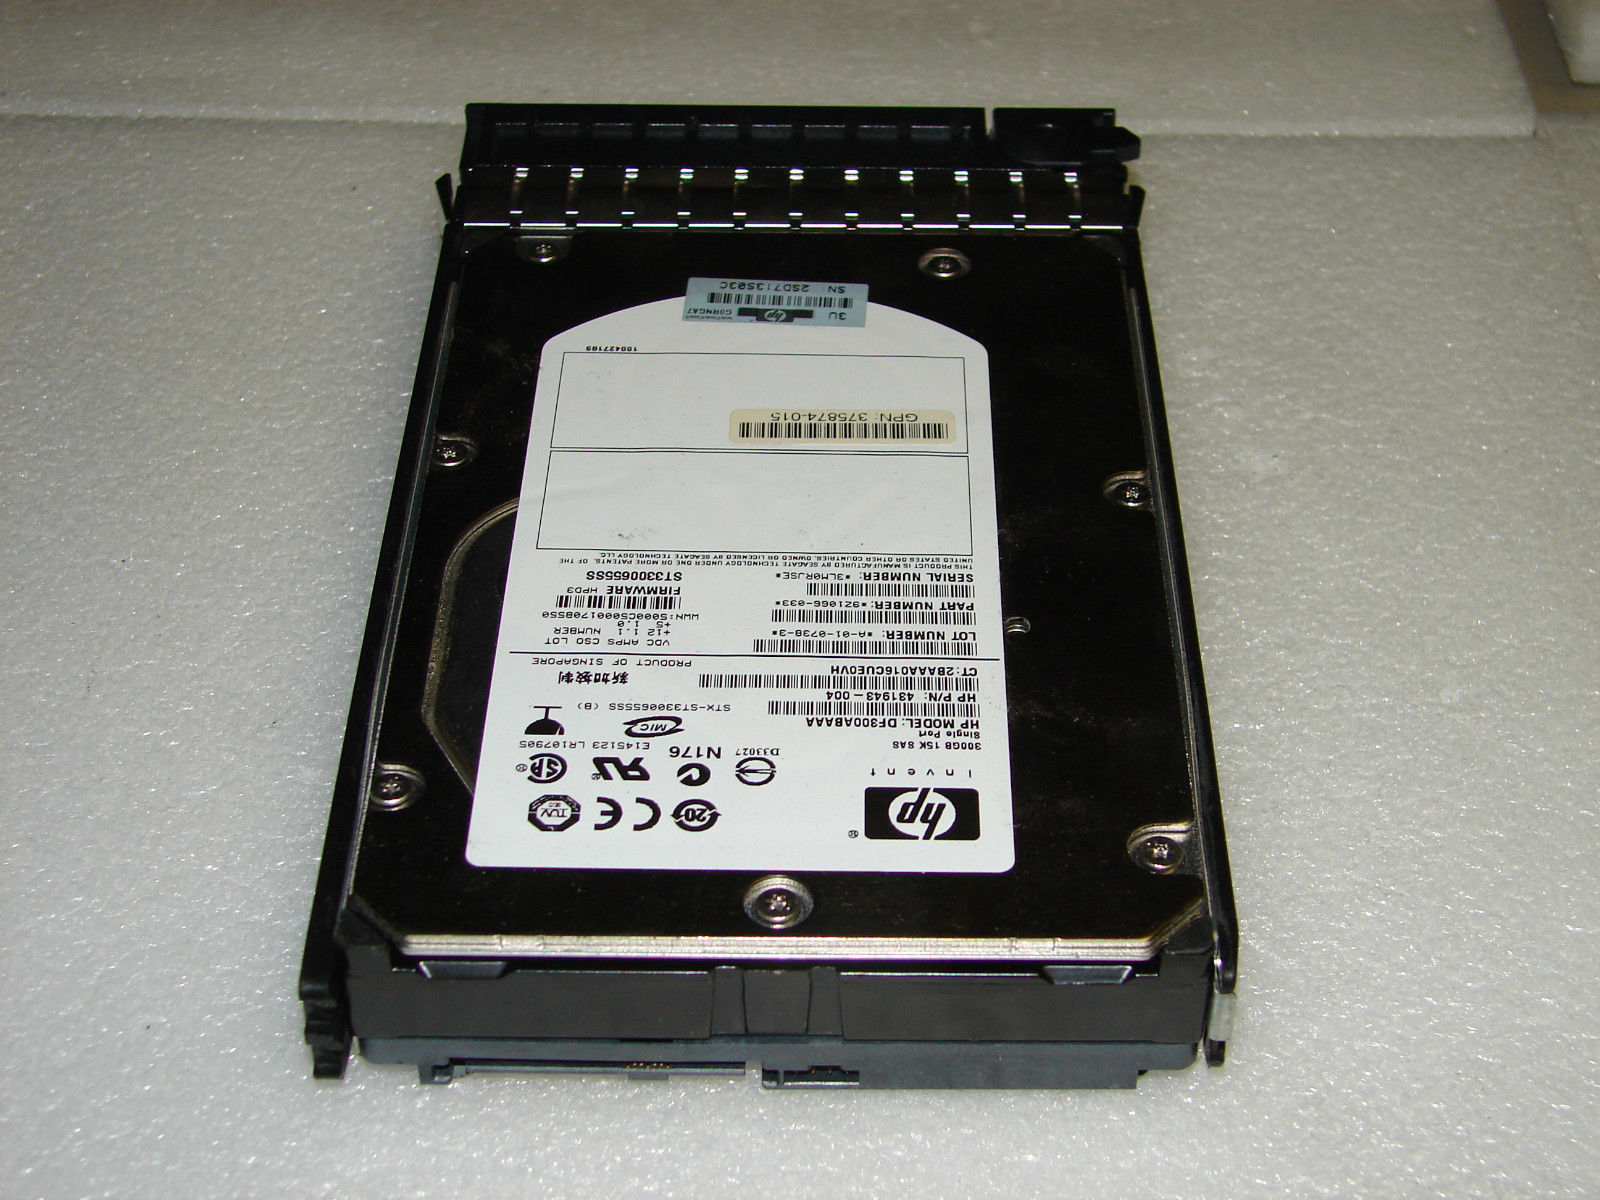 HP-300-GBInternal15000-RPM35-432146-001-431943-004-SAS-Hard-Drive-w-Tray-371178284638-3.jpg